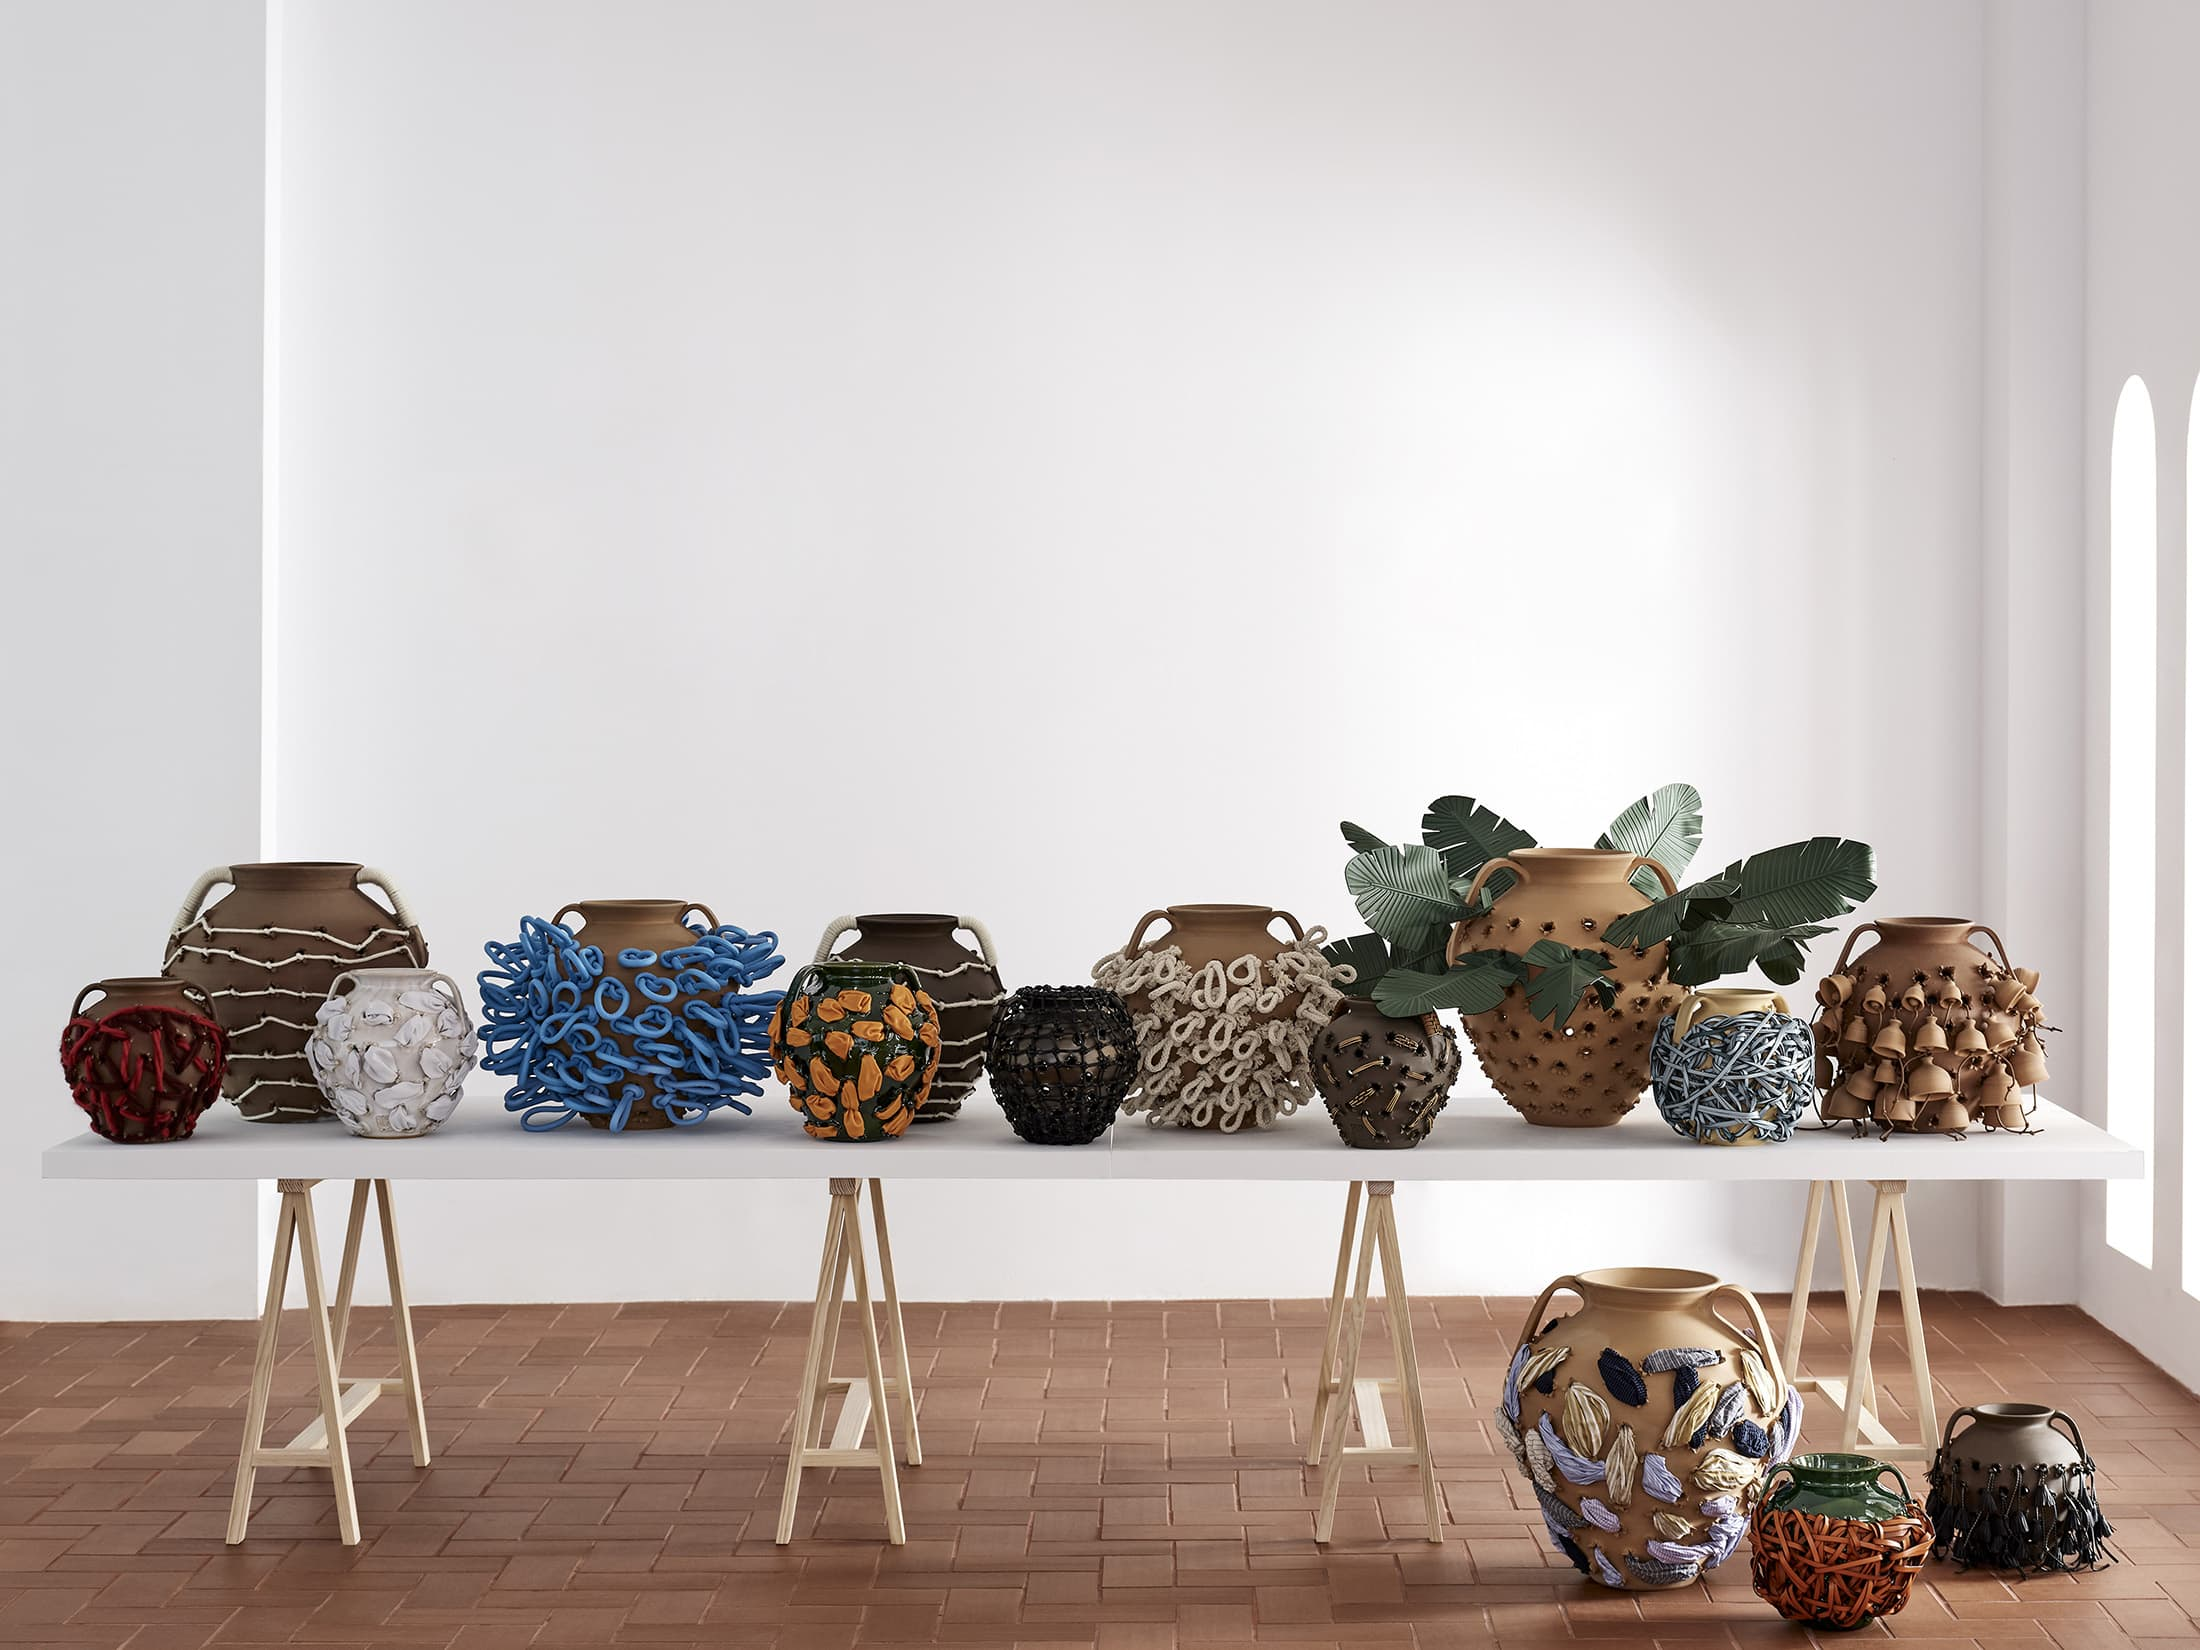 Loewe Weaves Collection Launched in Collaboration With Sotheby's